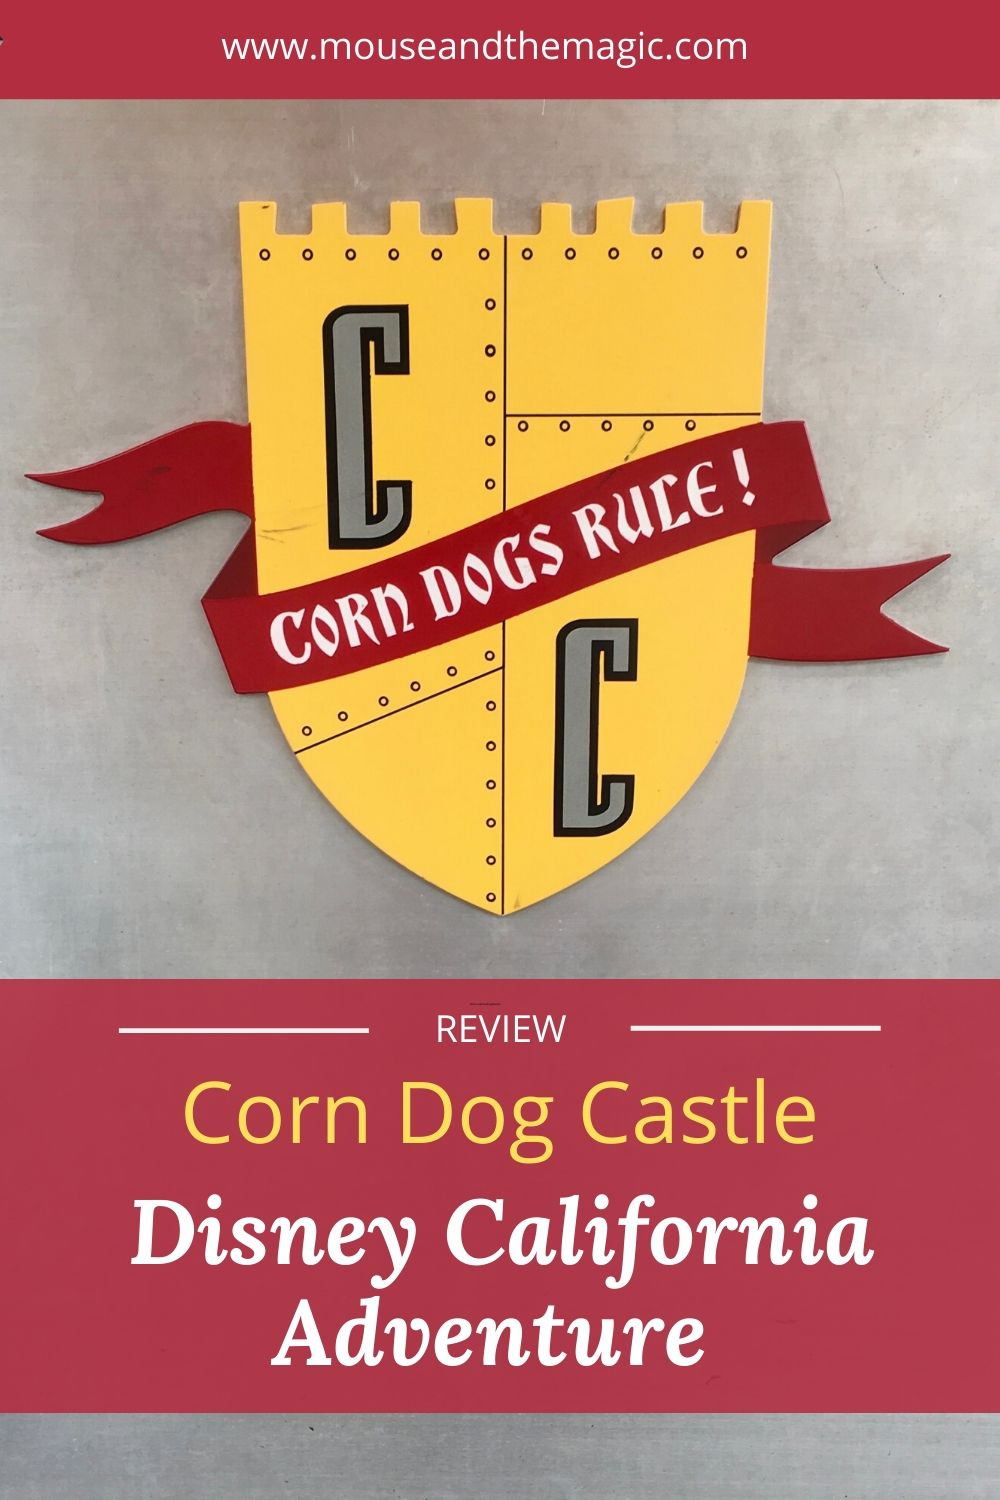 Review - Corn Dog Castle - Disney California Adventure